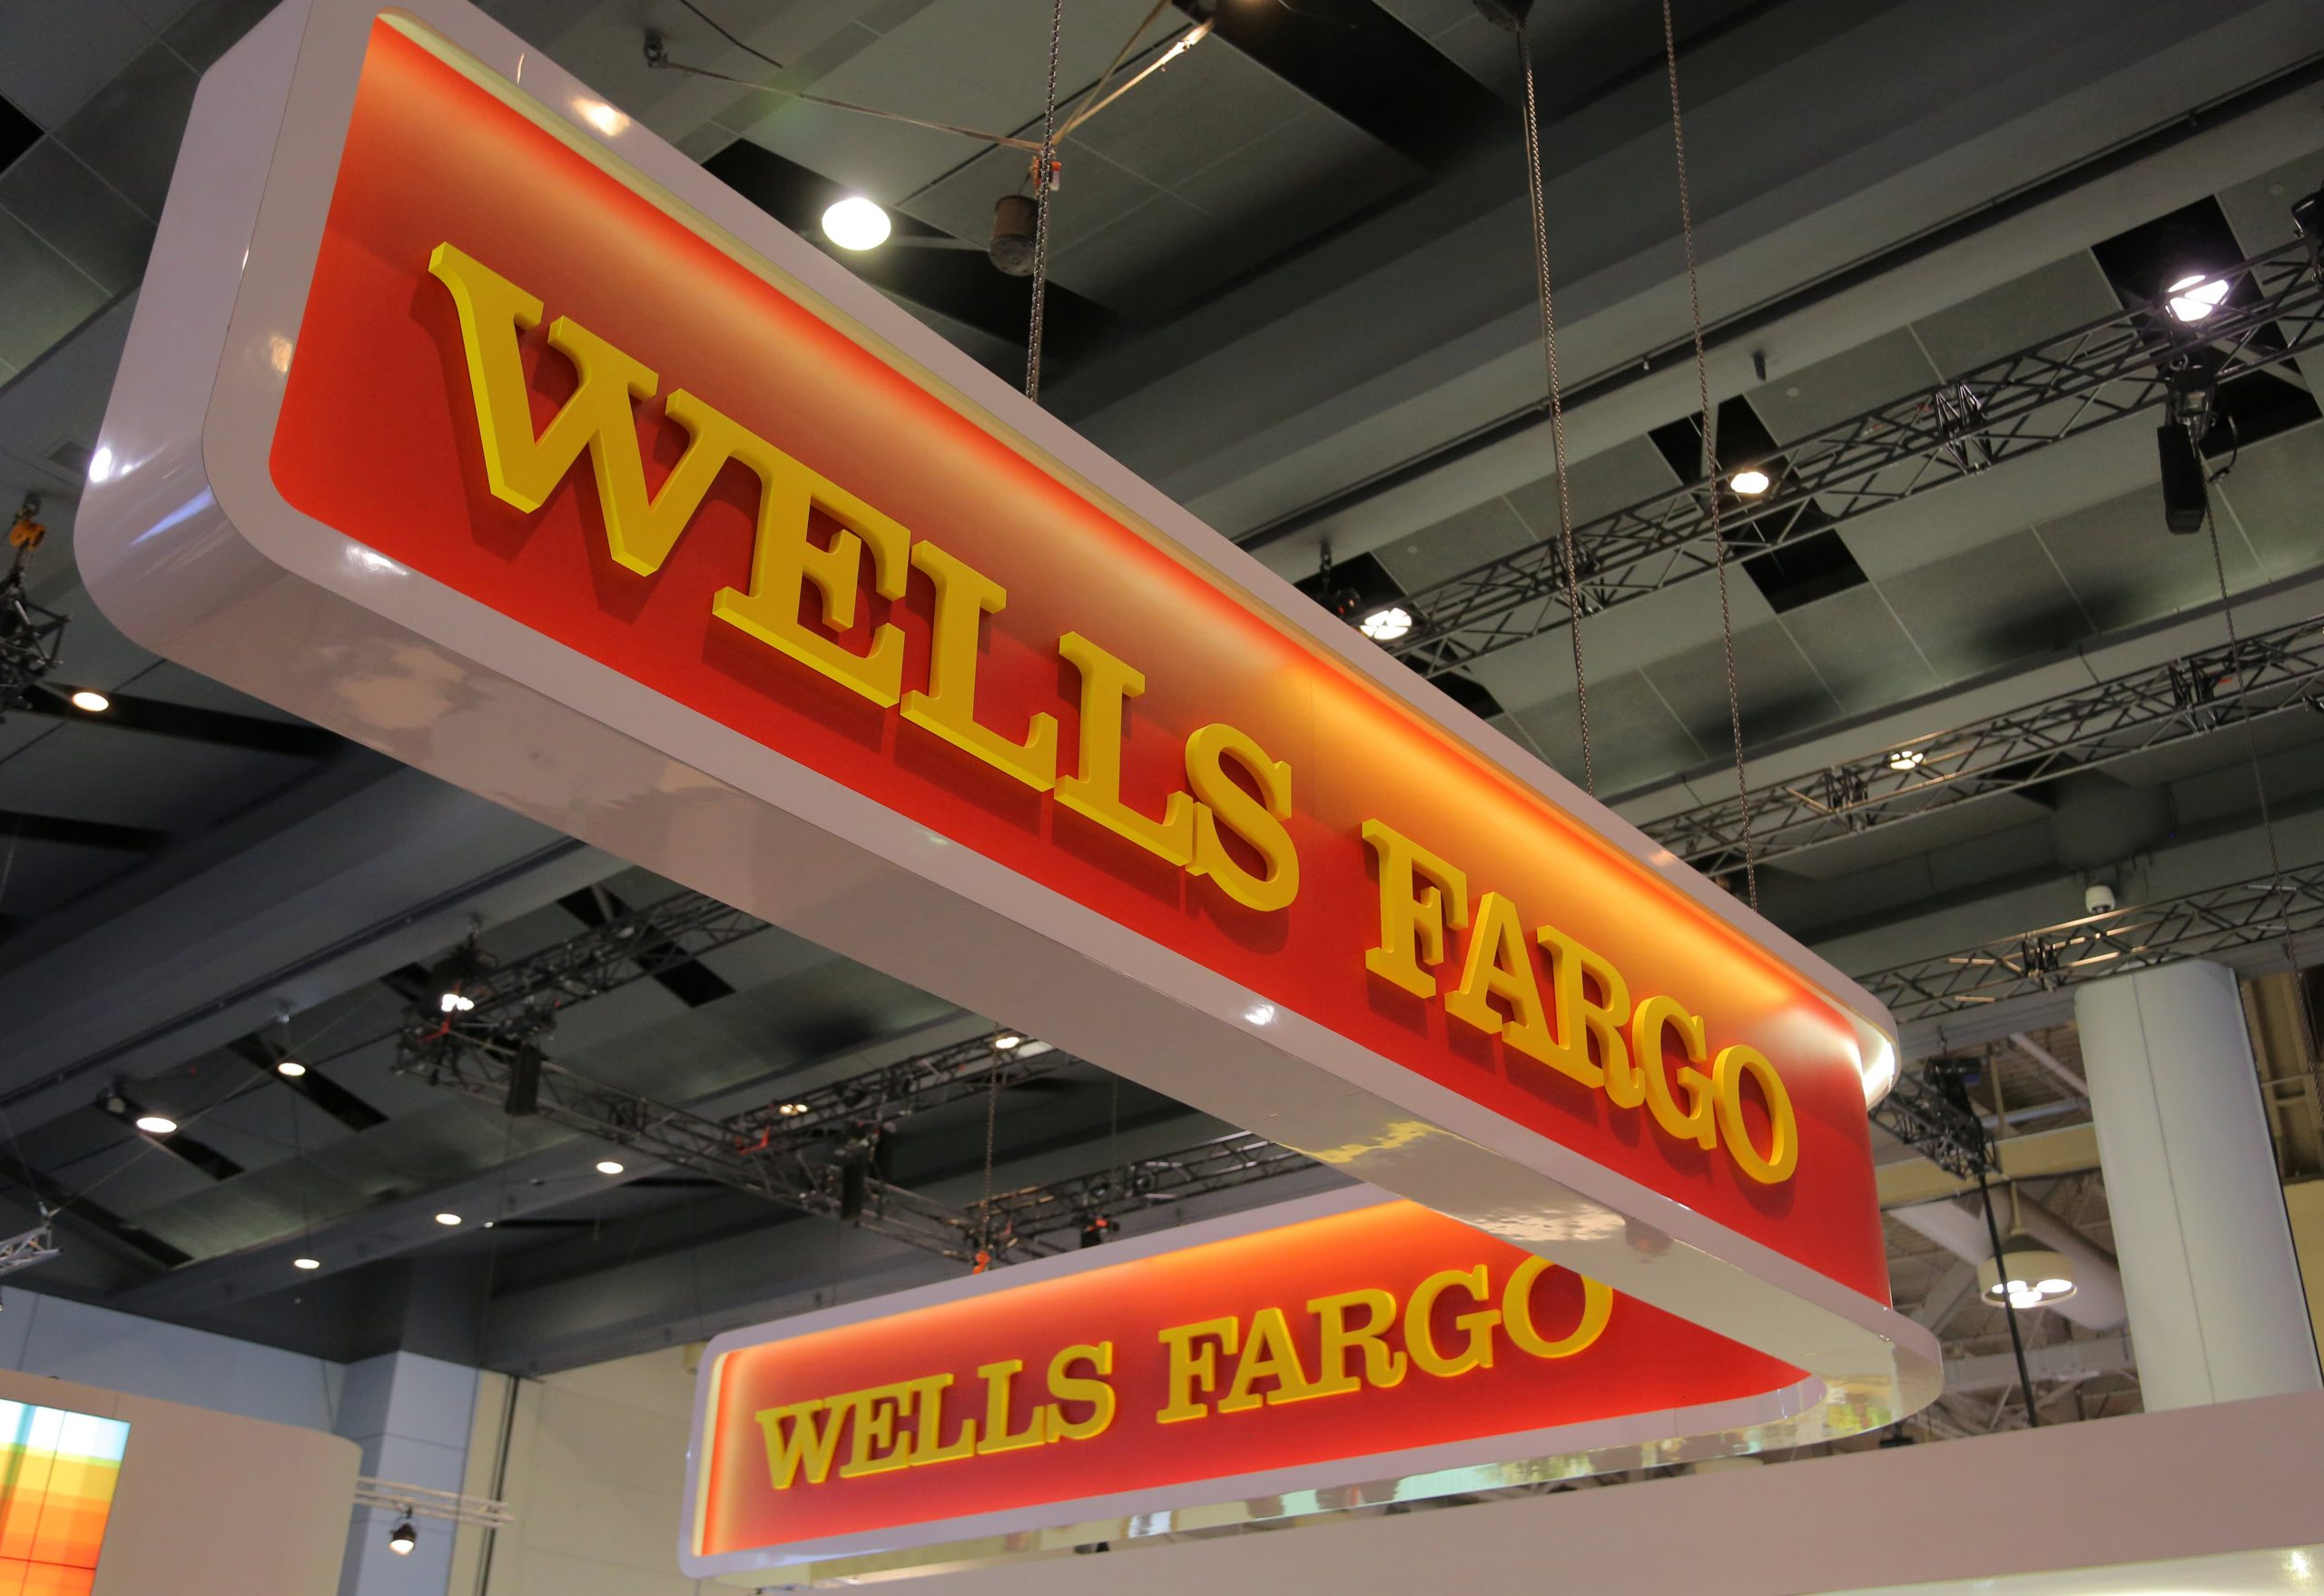 Wells Fargo has a new virtual assistant in the works named Fargo